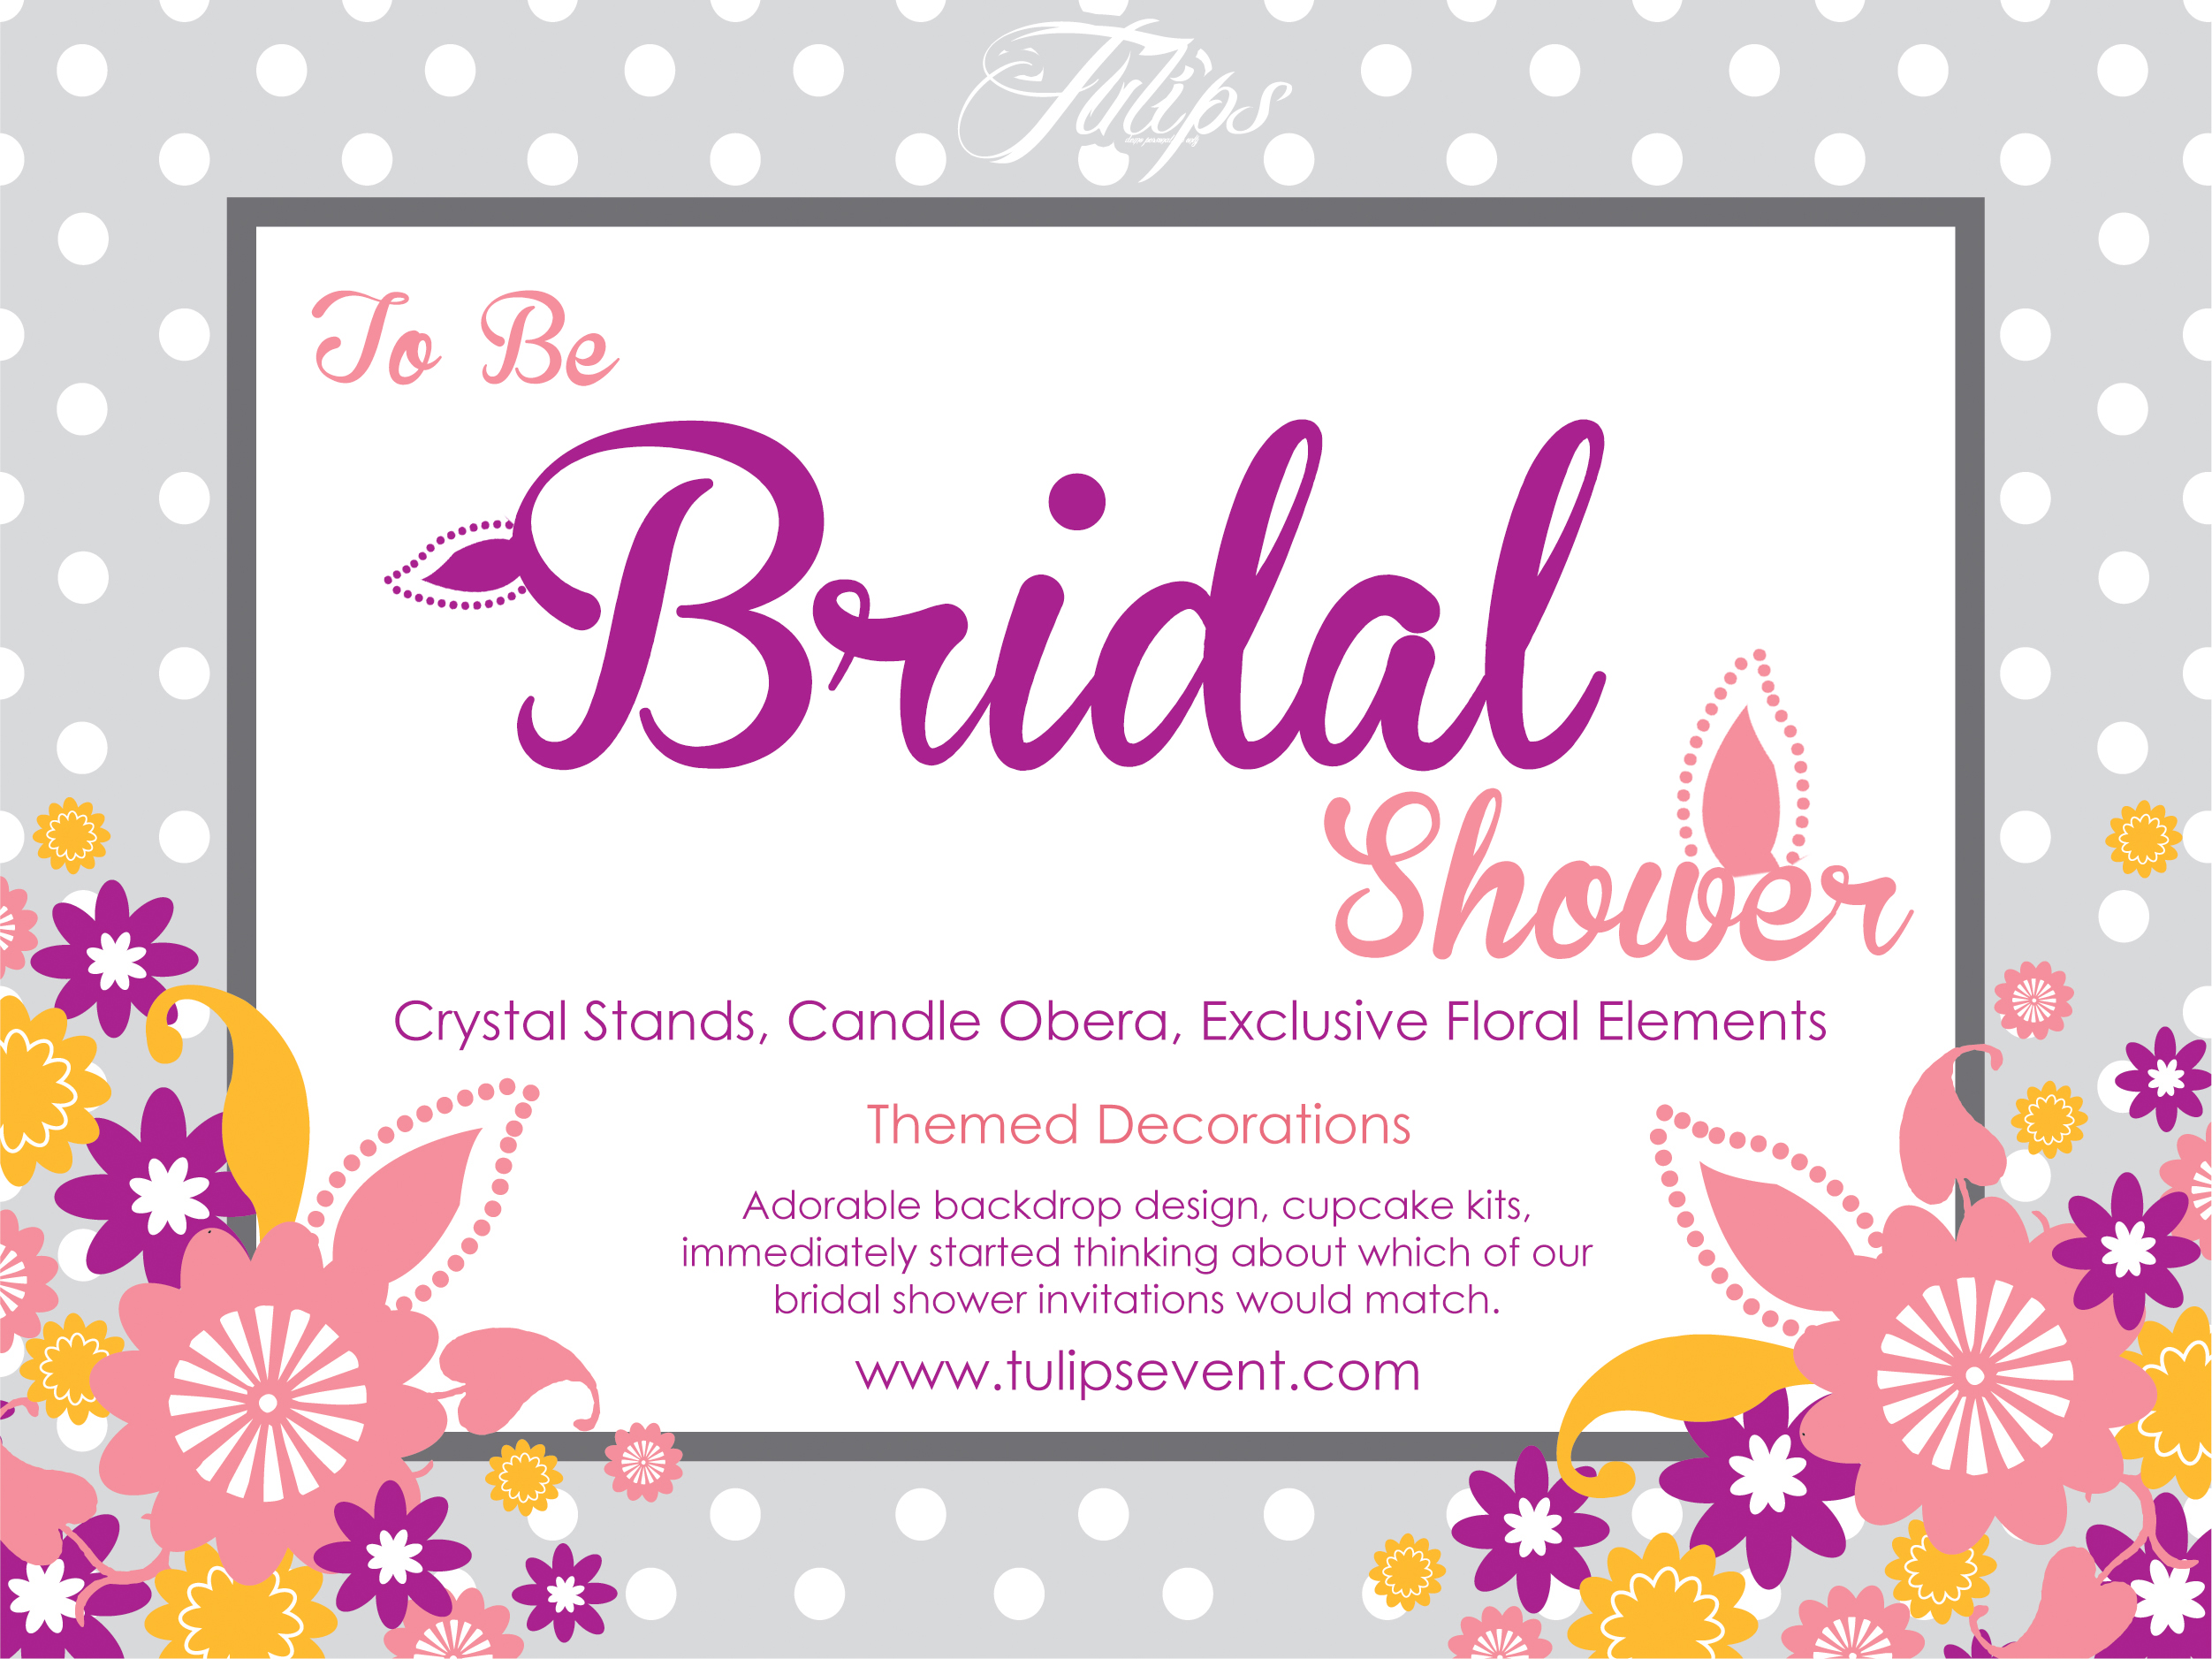 Planning showers parties bridal shower themes